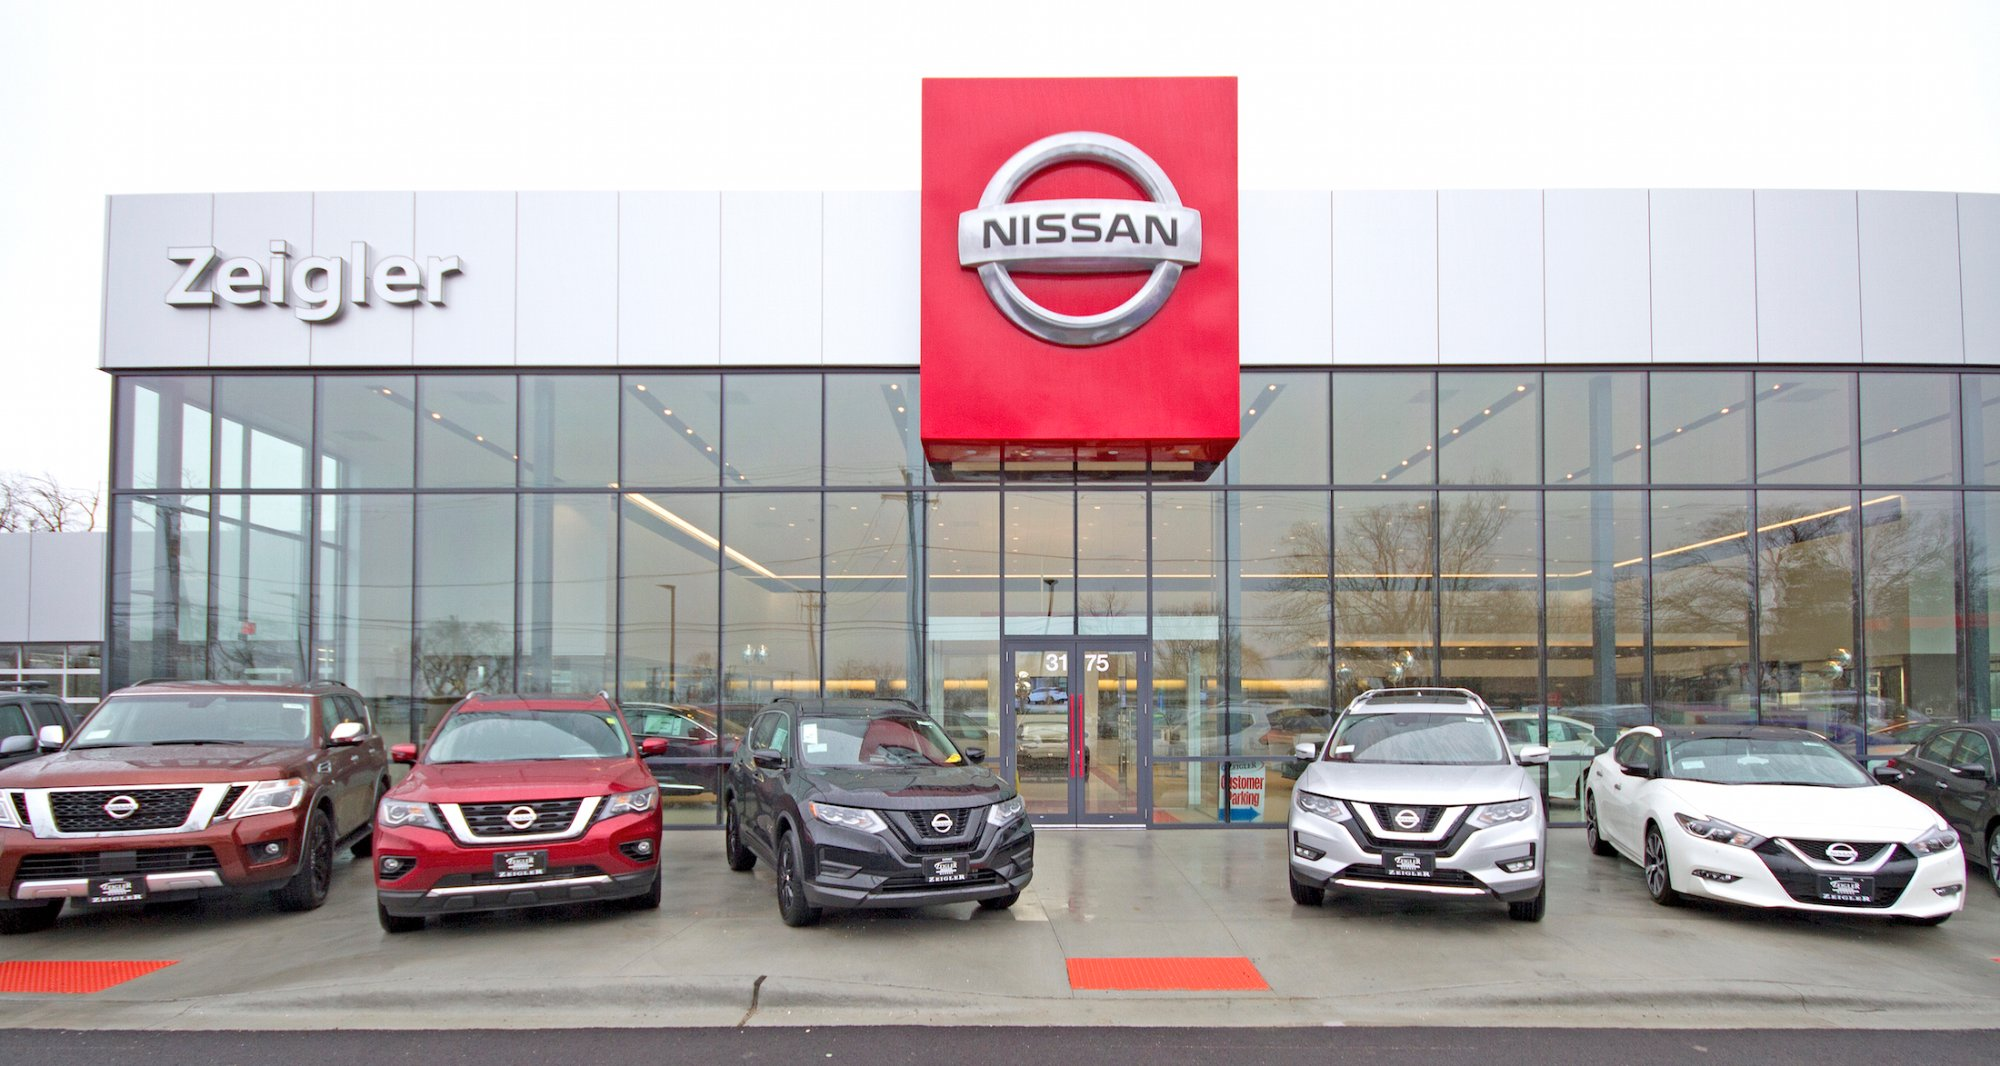 nissan-opens-first-purpose-built-20-store-us-iconic-design-francis-mariela